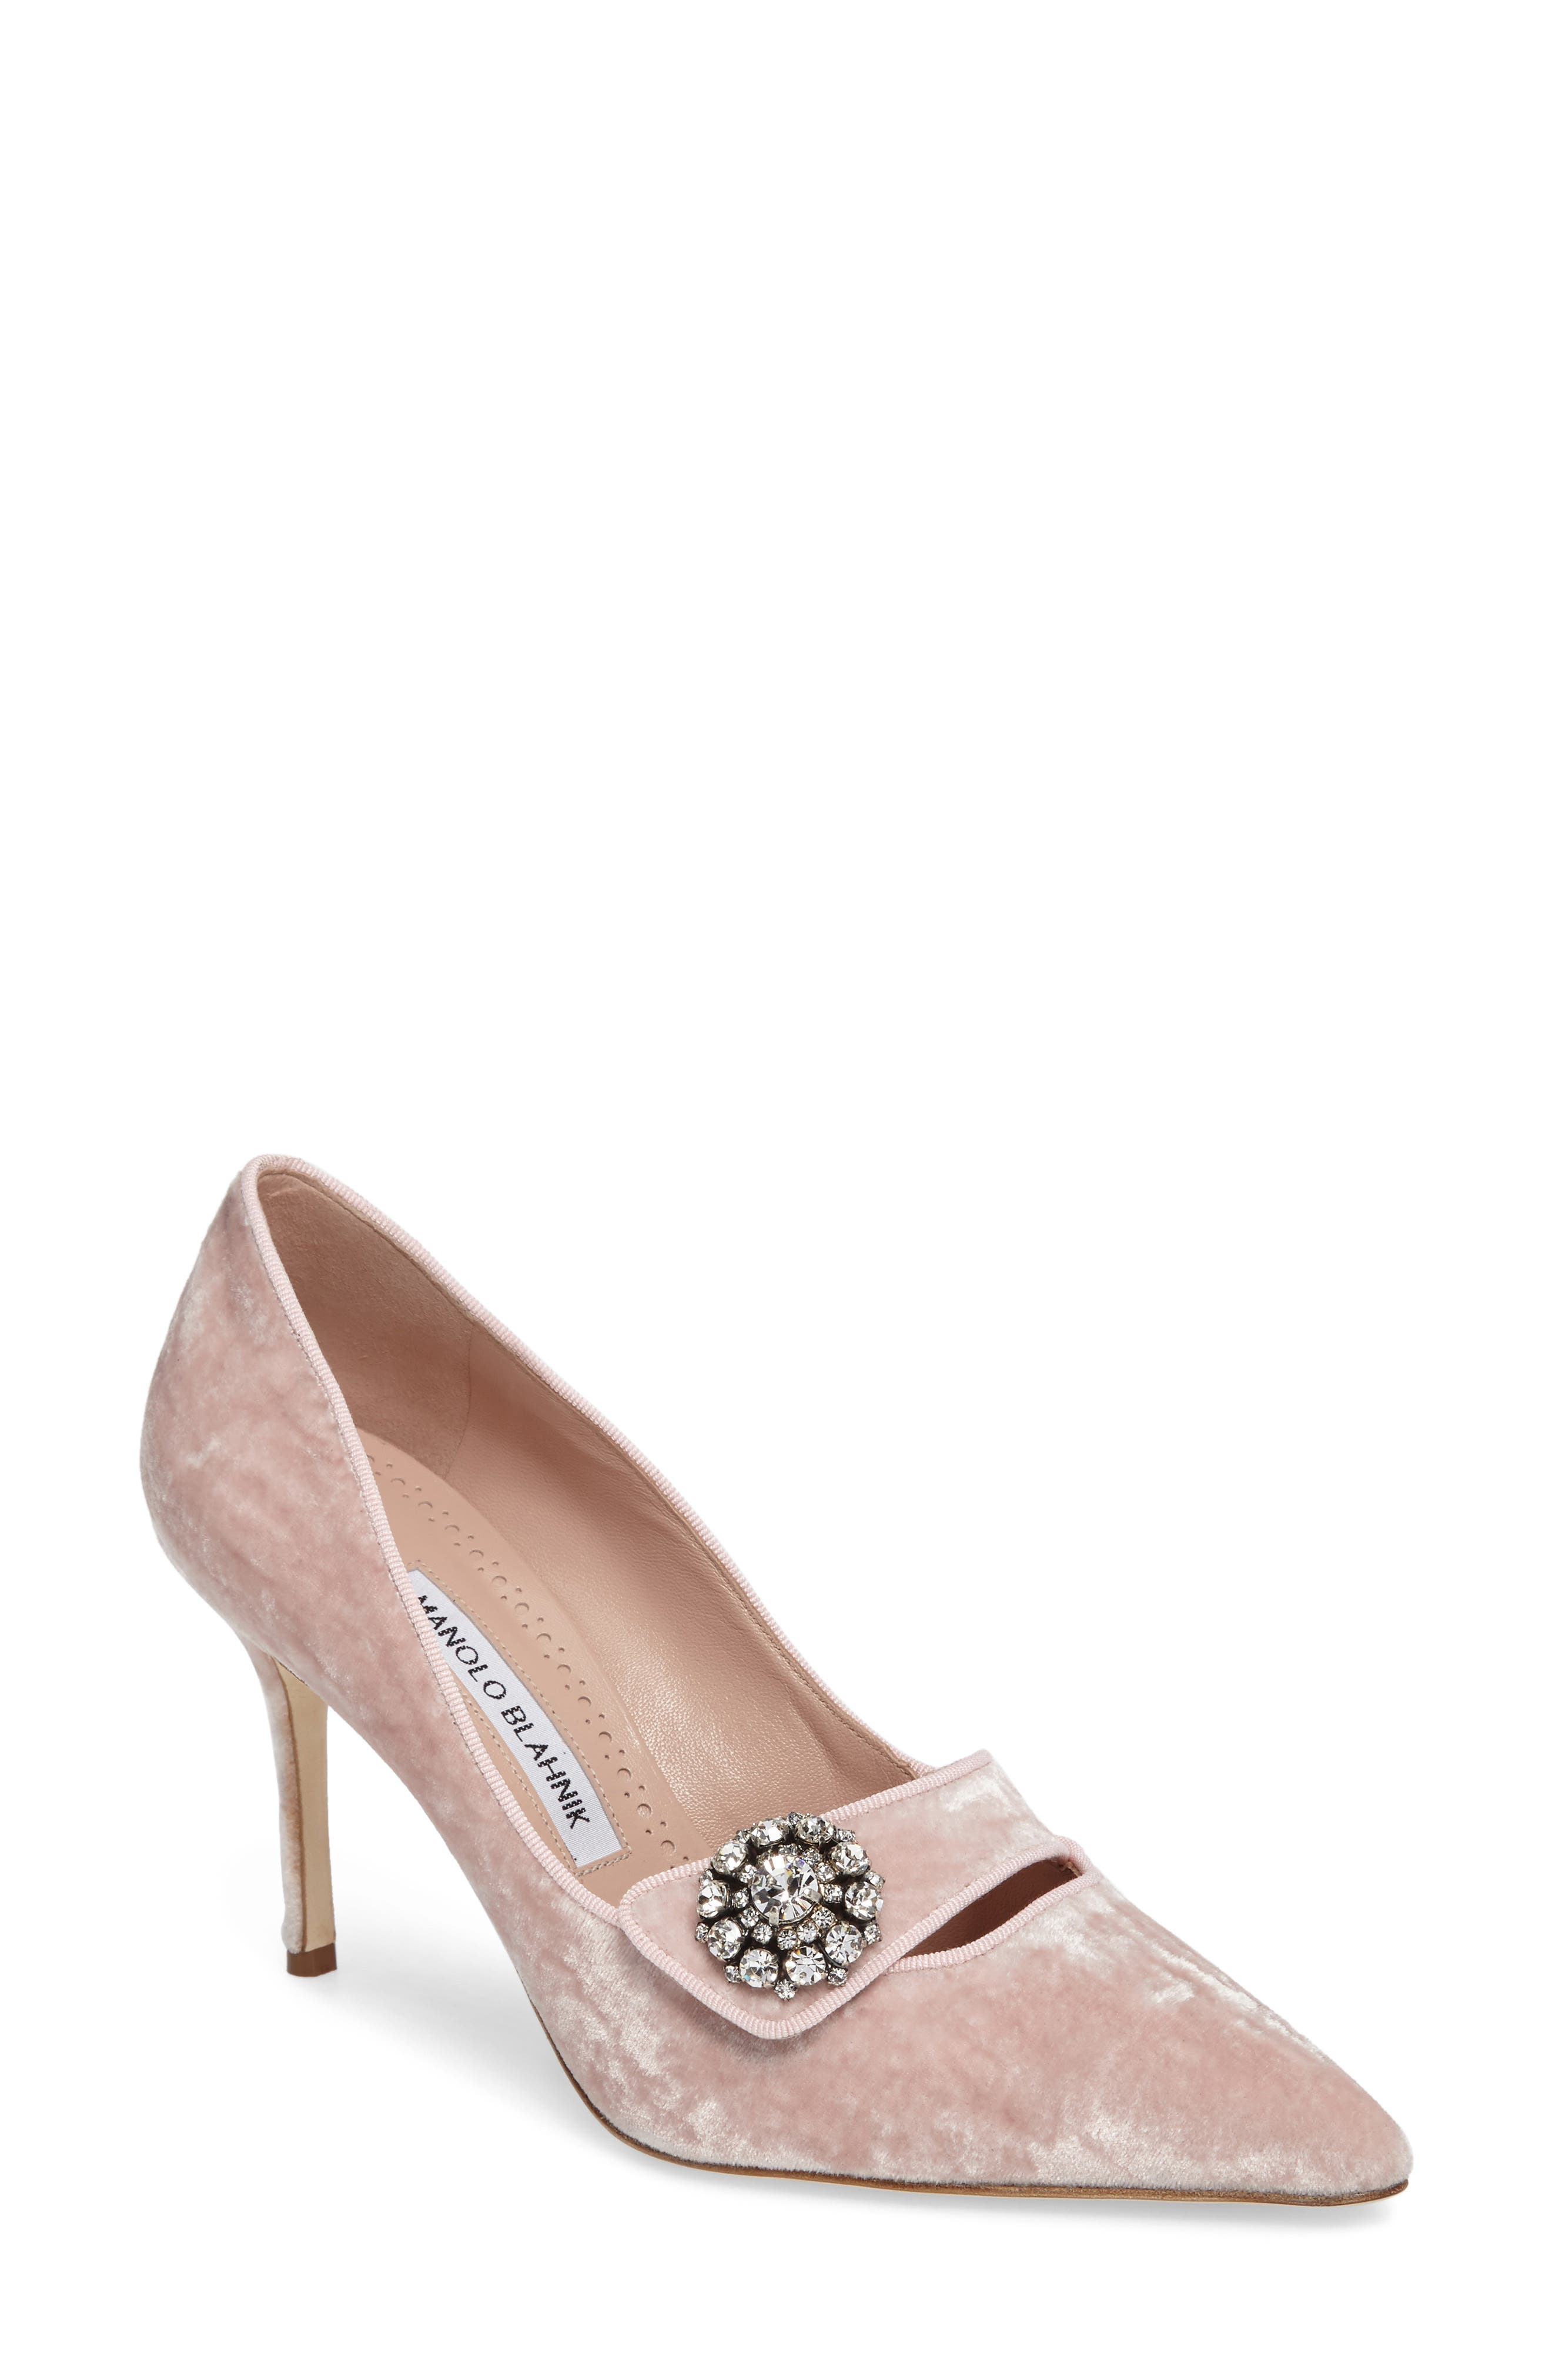 Decebalo Pump,                             Main thumbnail 1, color,                             Blush Velvet